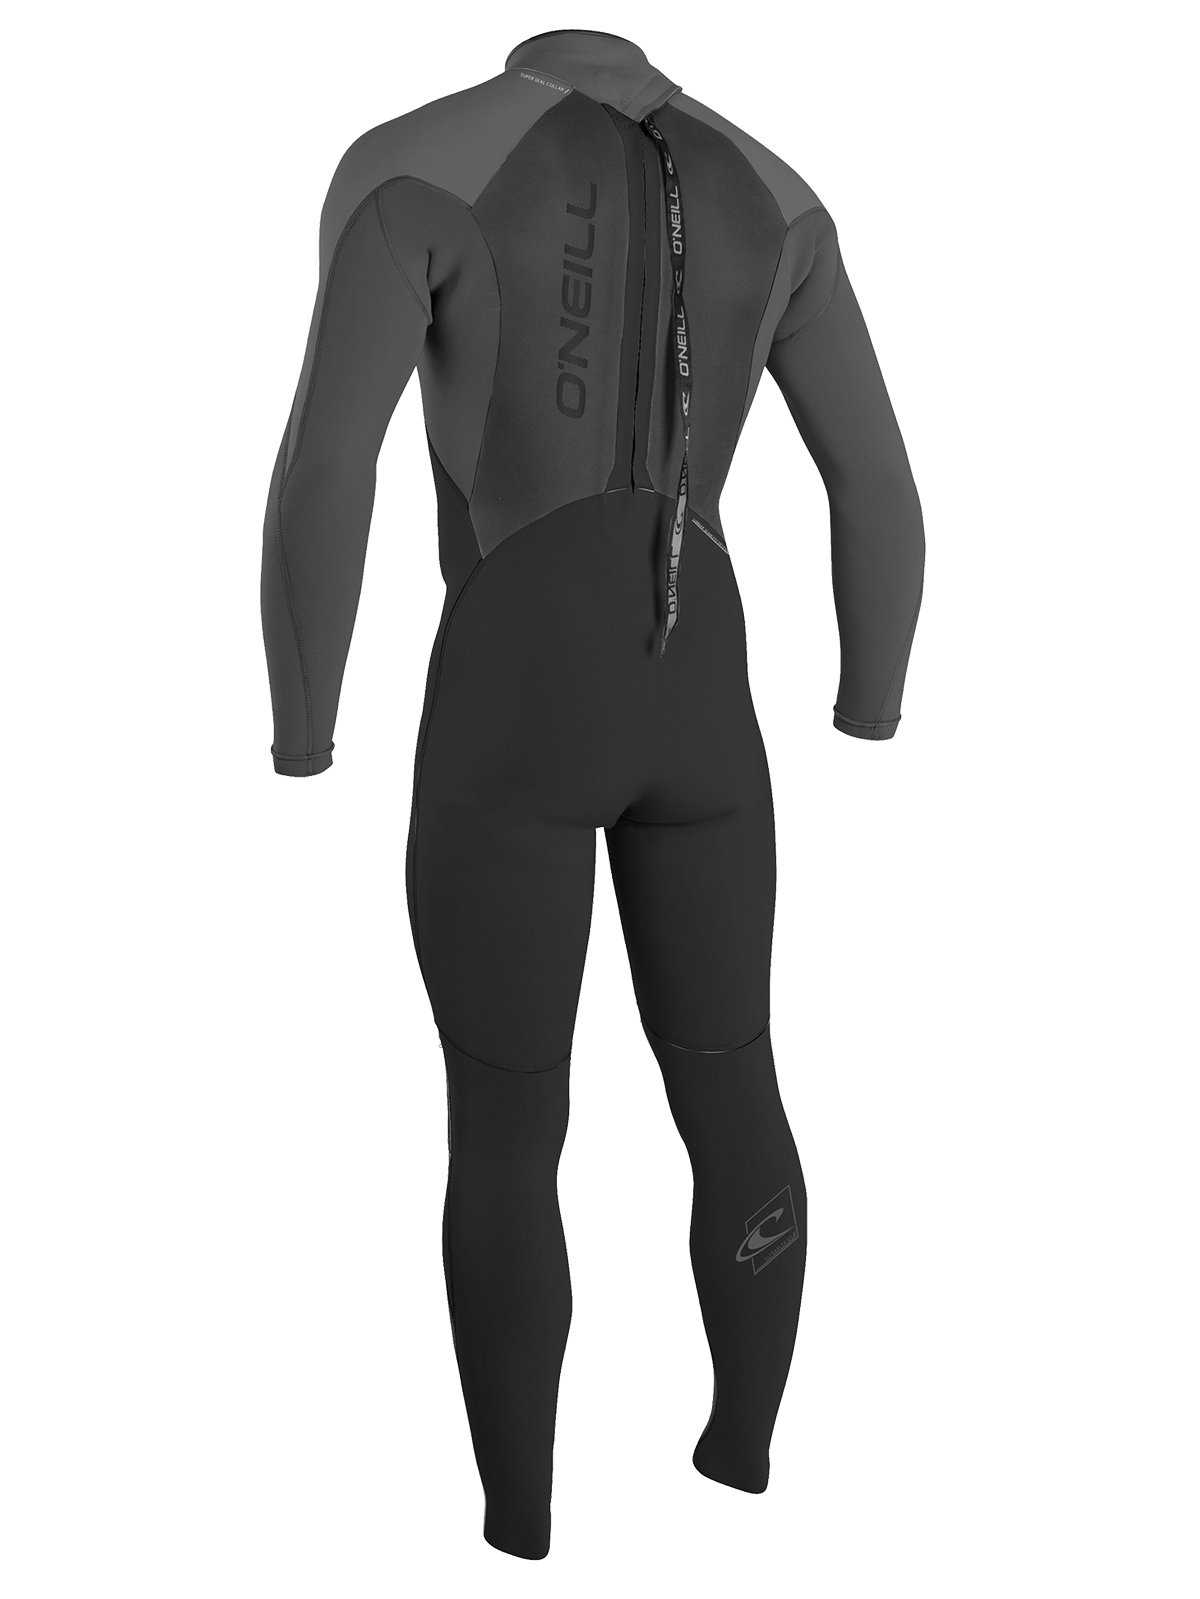 O'Neill Men's Epic 4/3mm Back Zip Full Wetsuit, Black/Oil/Smoke, Small by O'Neill Wetsuits (Image #3)